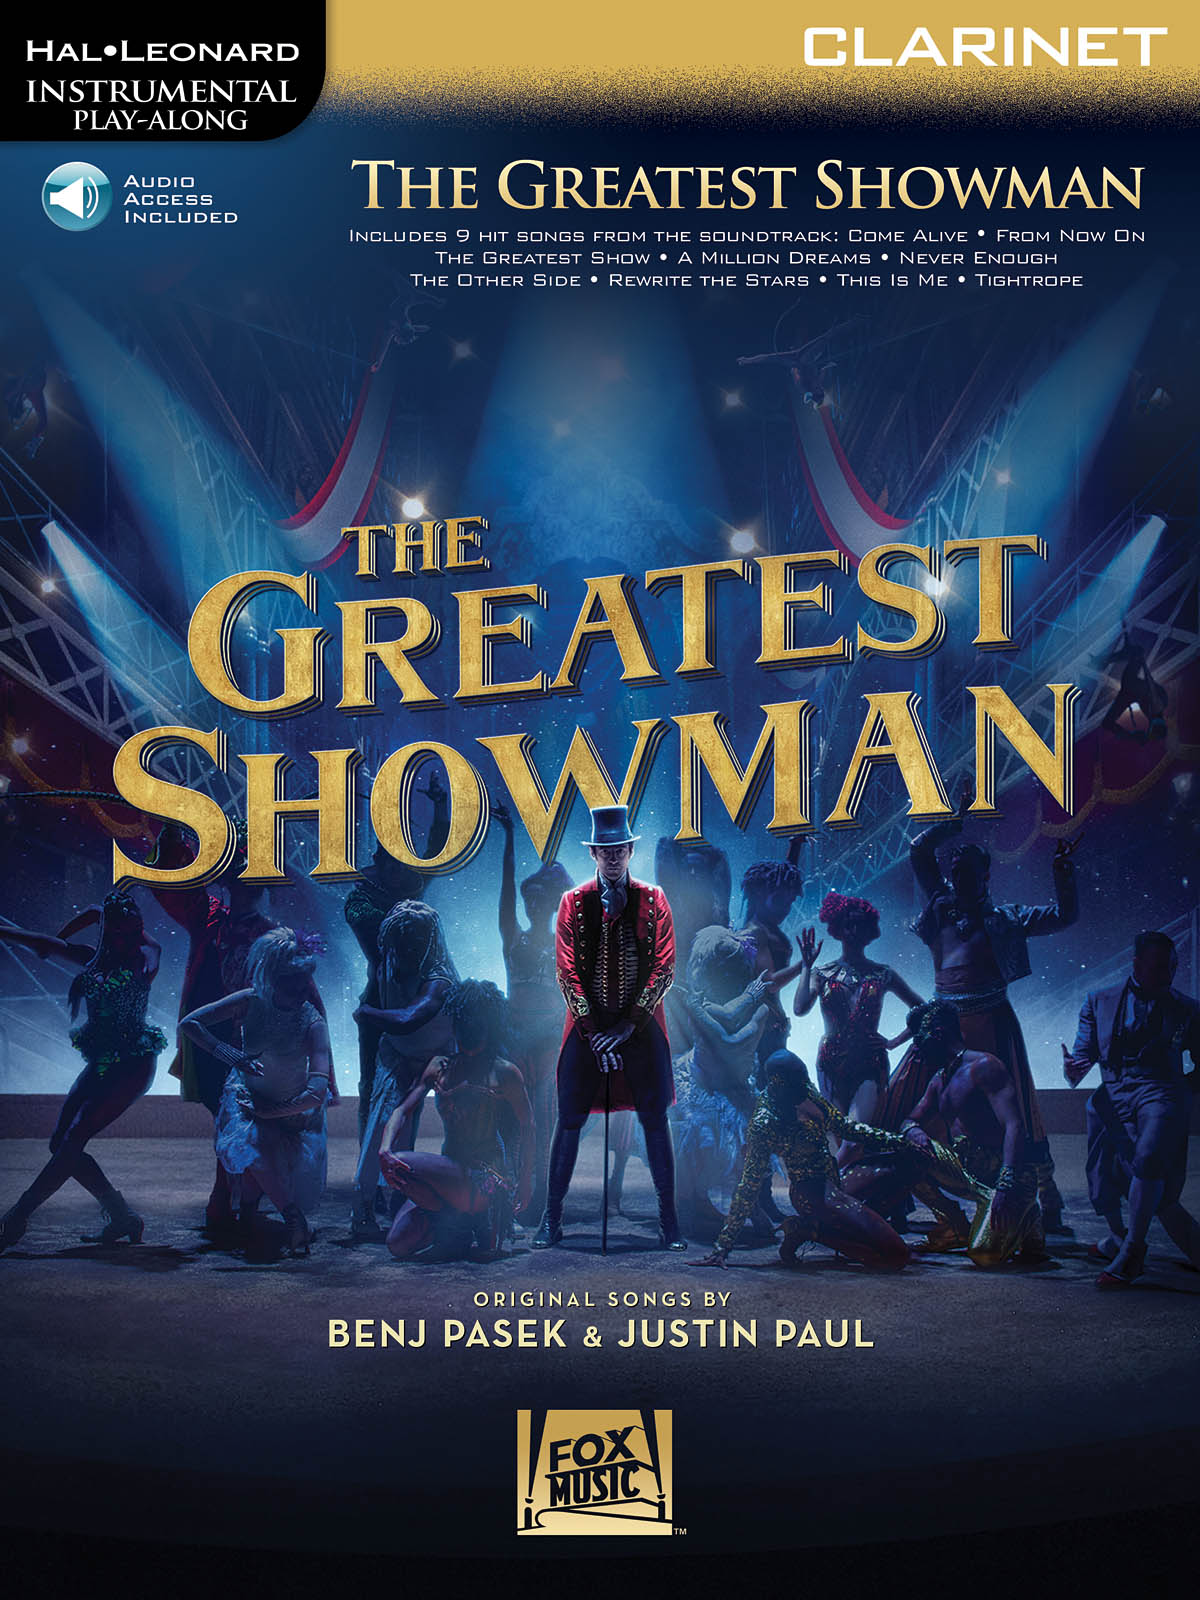 Instrumental Play-Along: The Greatest Showman - Clarinet (Book/Online Audio) (Hal-Leonard Instrumental Play-Along)